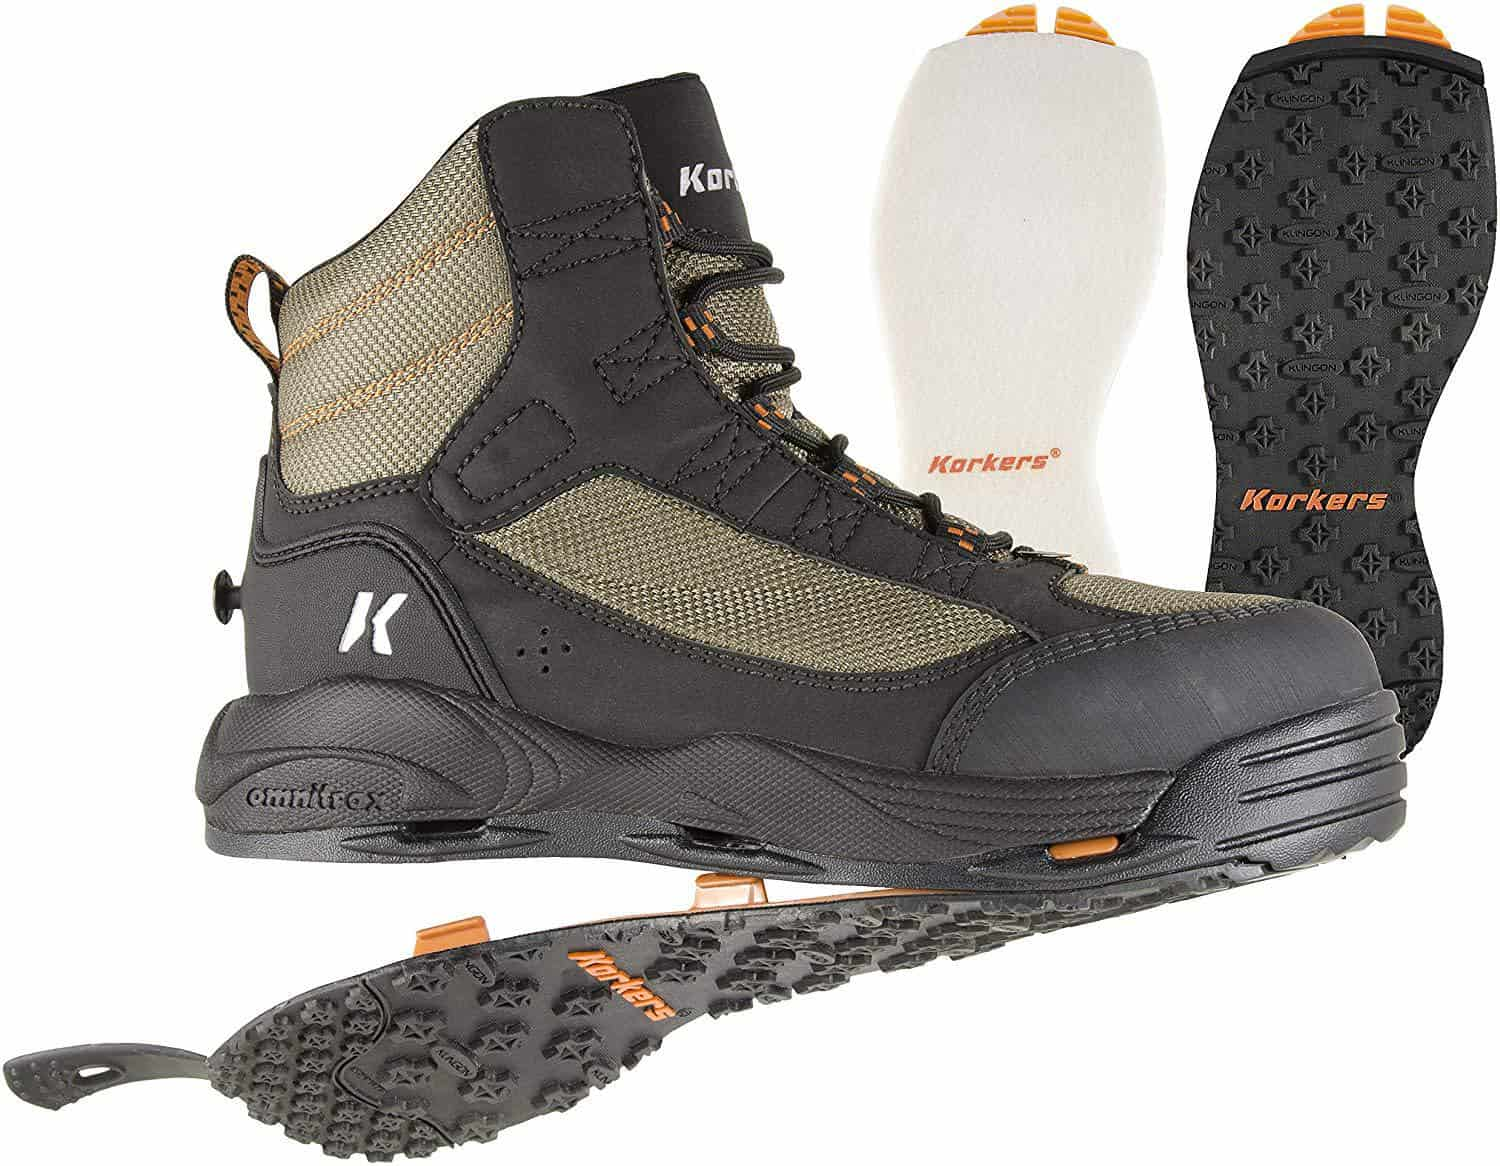 Greenback Wading Boots by Korkers